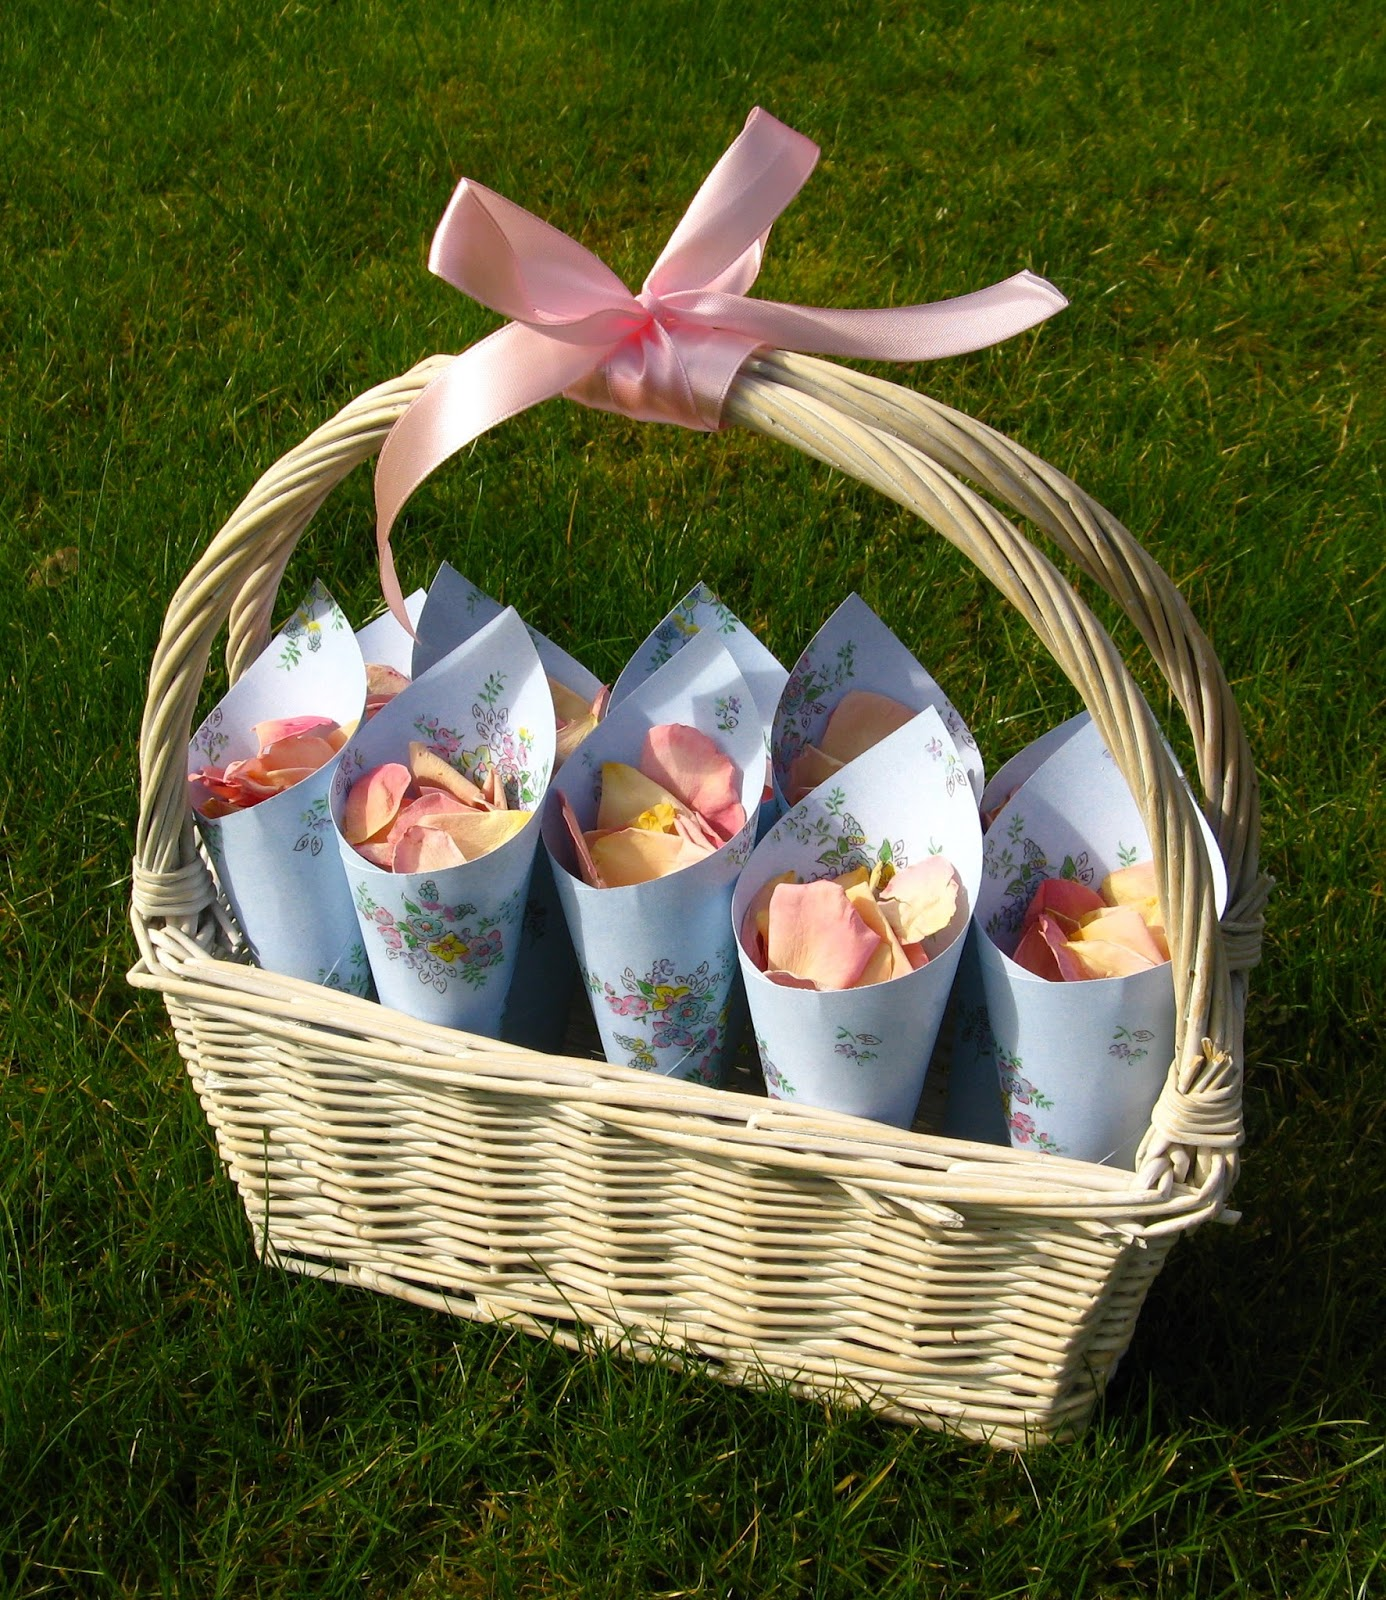 Flower Baskets For Weddings Uk : The confetti choosing your petal tips